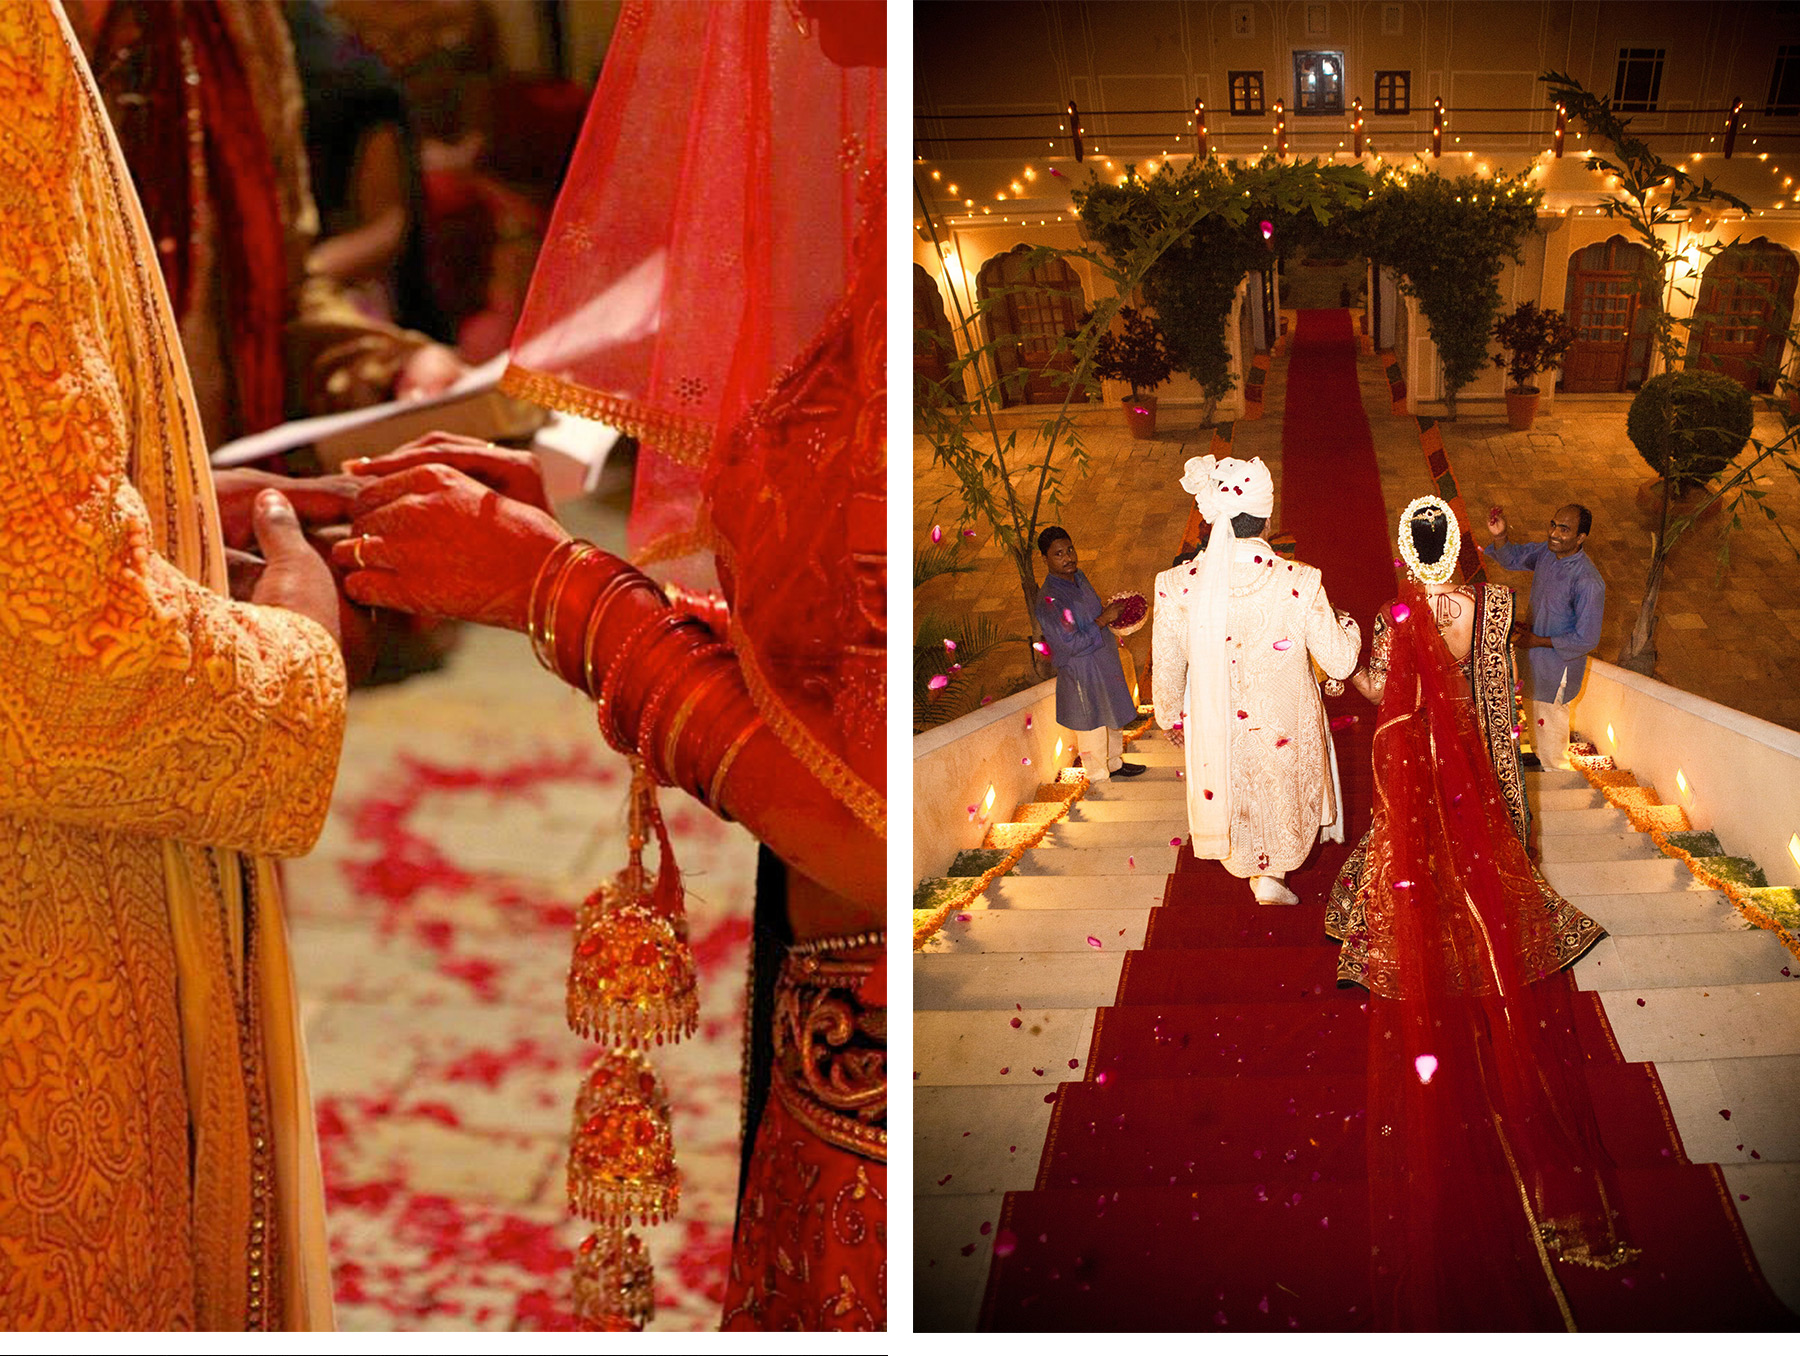 Our Muse - Vibrant Indian Wedding - Be inspired by Christina & Benjamin's colorful wedding in Rajasthan, India - colorful wedding, indian wedding ceremony, bride, groom, aisle, traditional, india, jaipur, rajasthan, destination wedding, lanterns